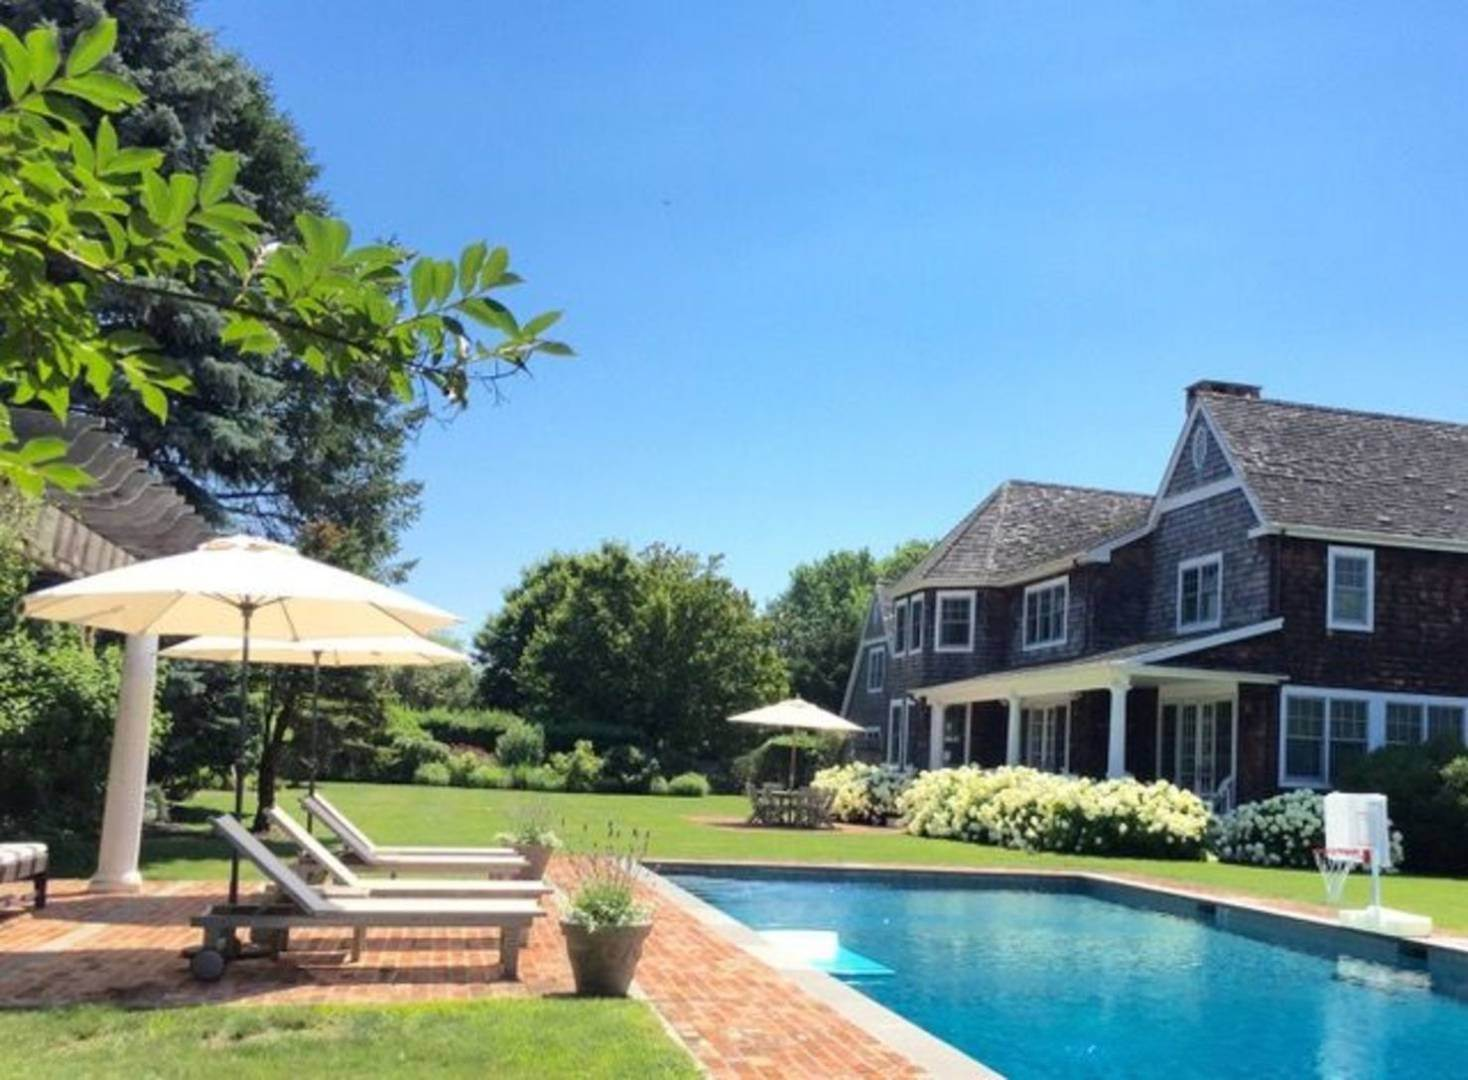 Single Family Home at Crisp And Beautifully Detailed Southampton Village Home Southampton, NY 11968